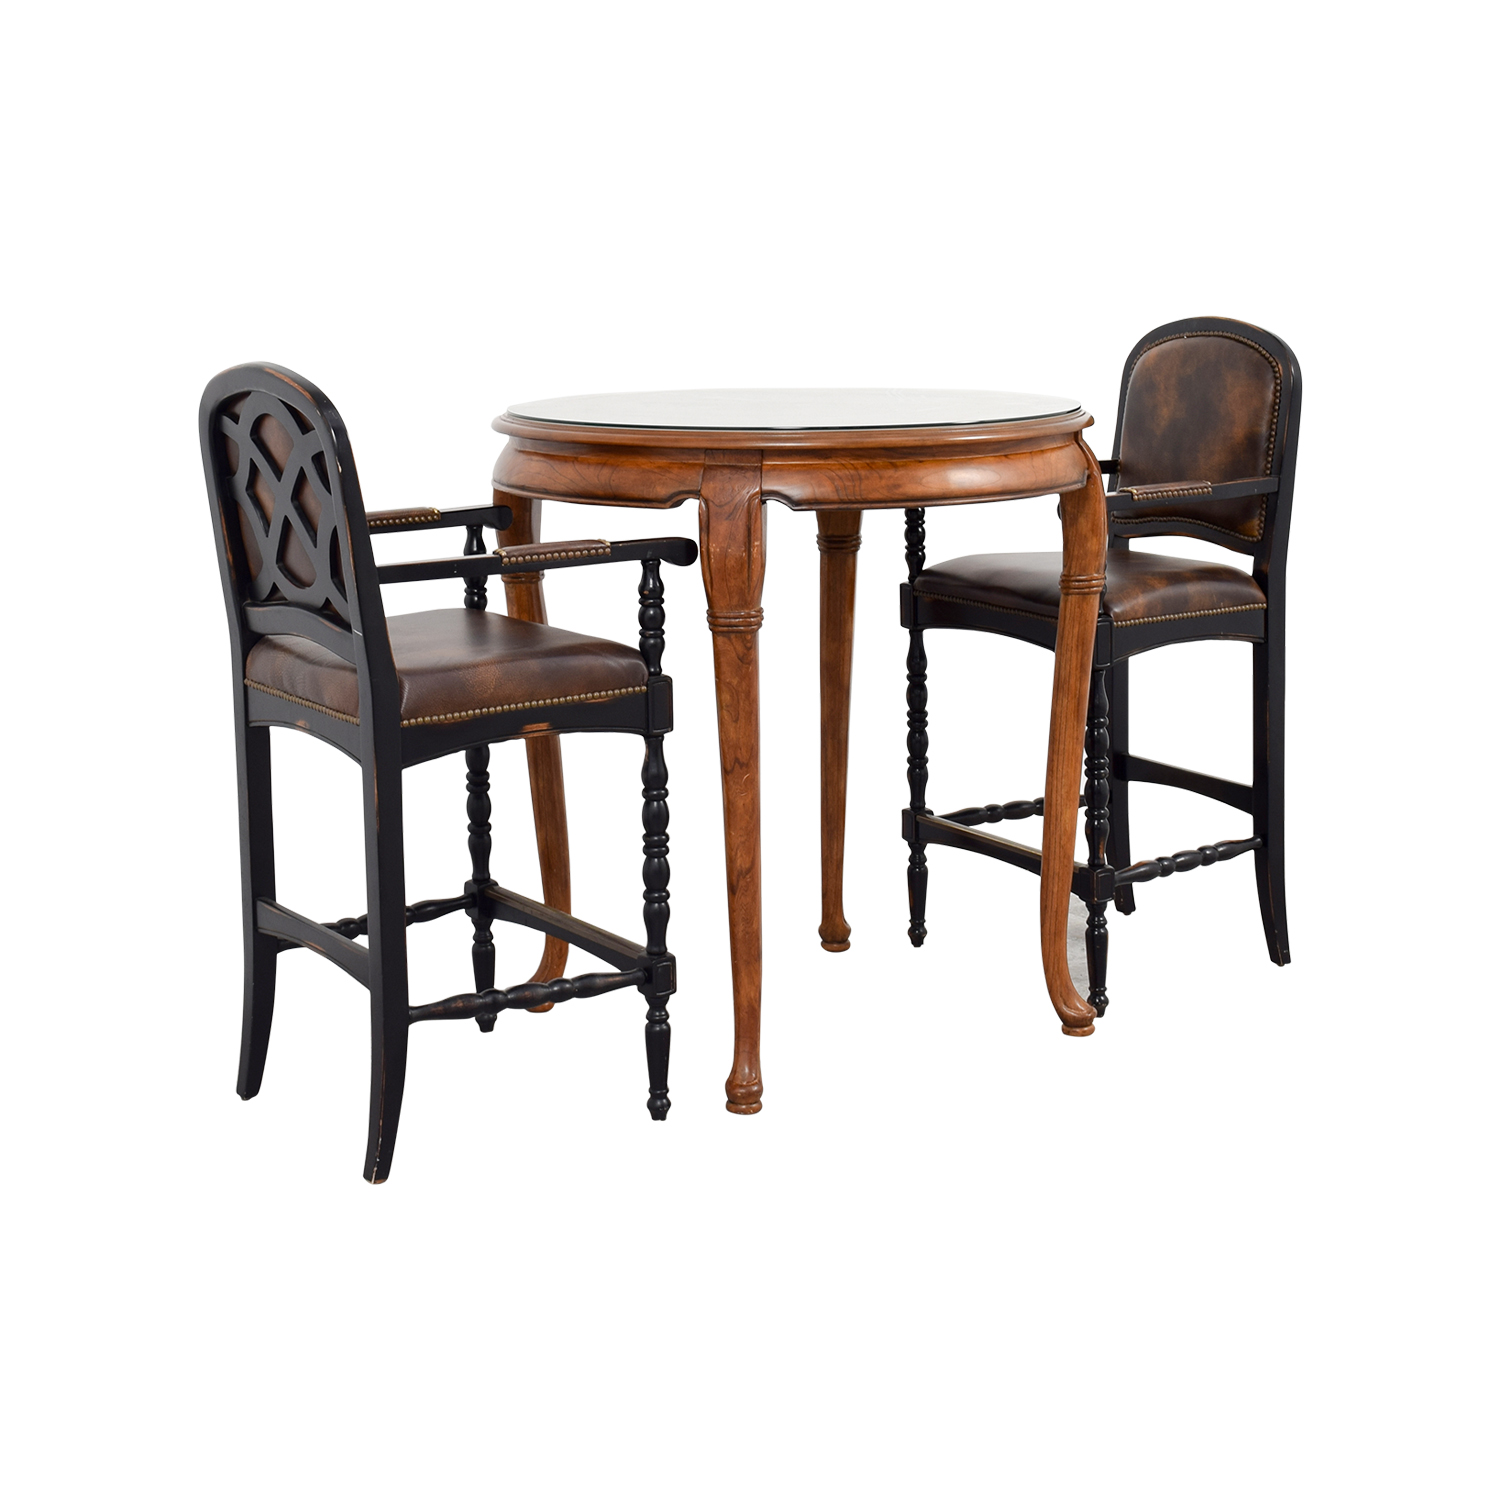 66% OFF Cafe Table with Two Leather Chairs Tables